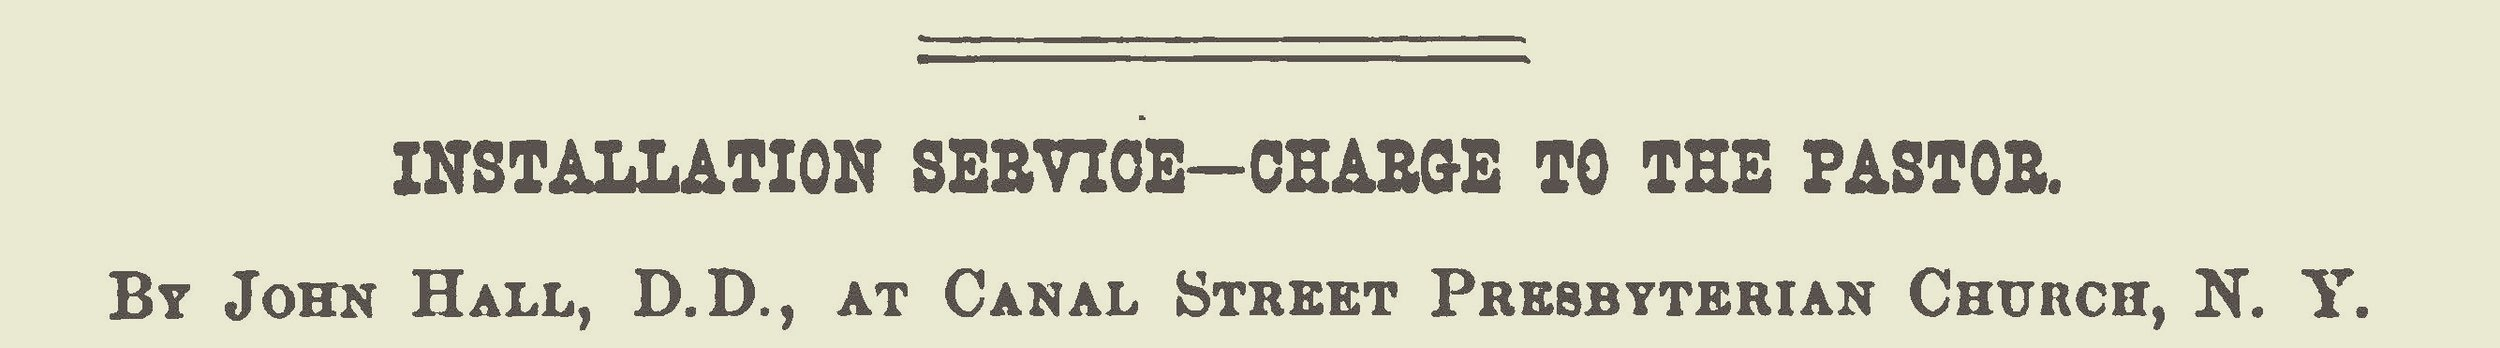 Hall, John, Installation Service Charge to the Pastor Title Page.jpg